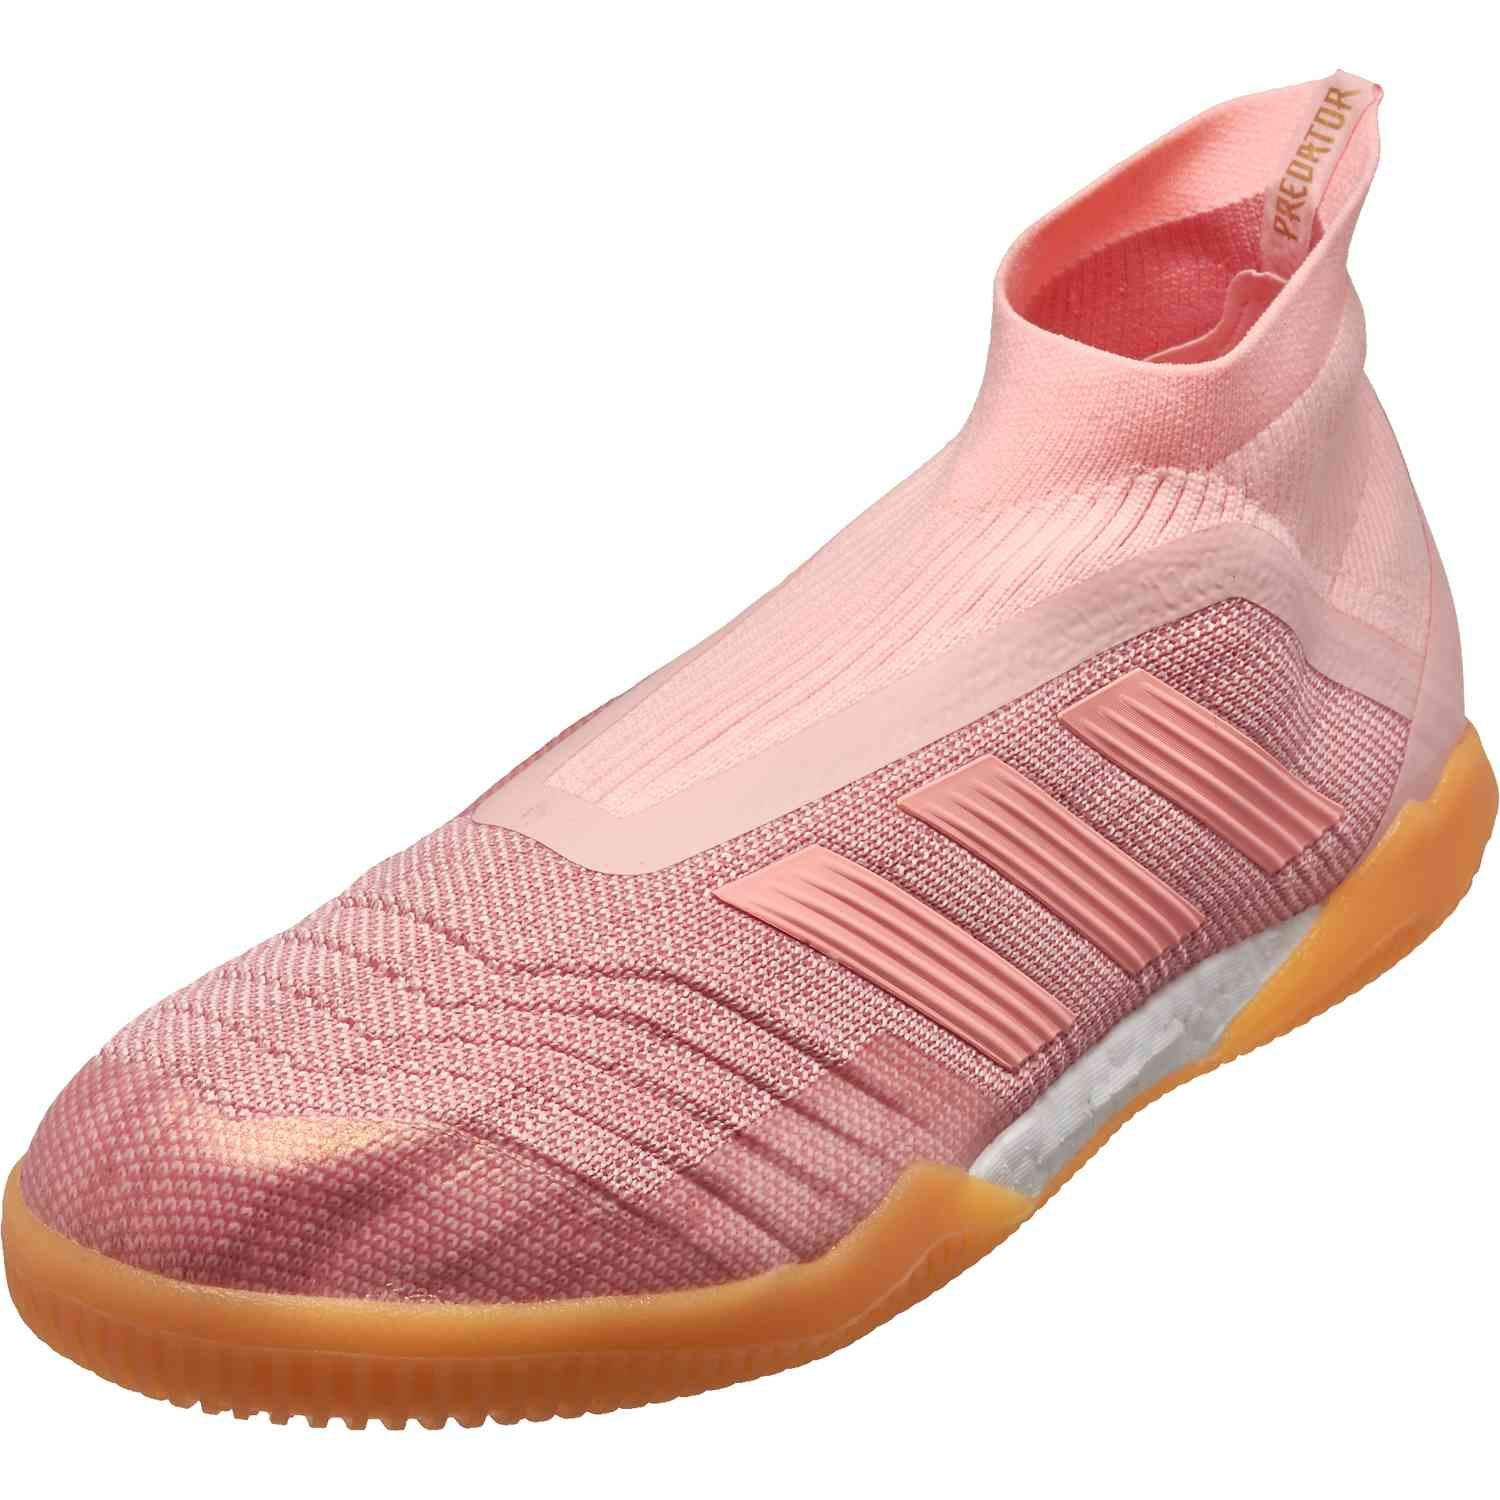 buy online 5e921 00057 Spectral Mode pack adidas Predator Tango 18+ indoor soccer shoes. Get these  shoes from SoccerPro.